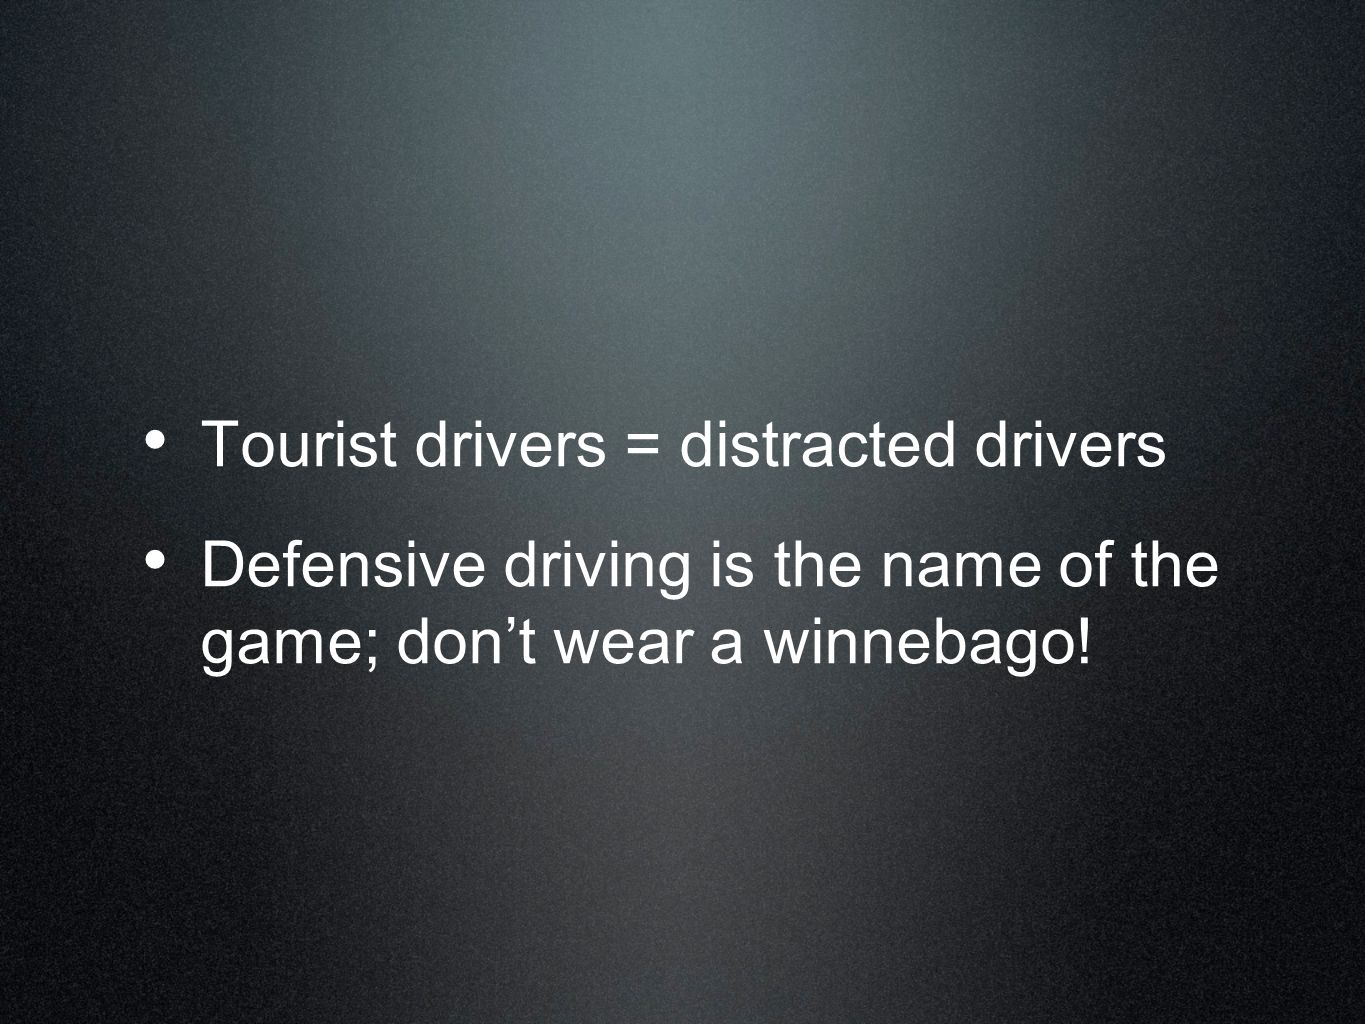 Tourist drivers = distracted drivers